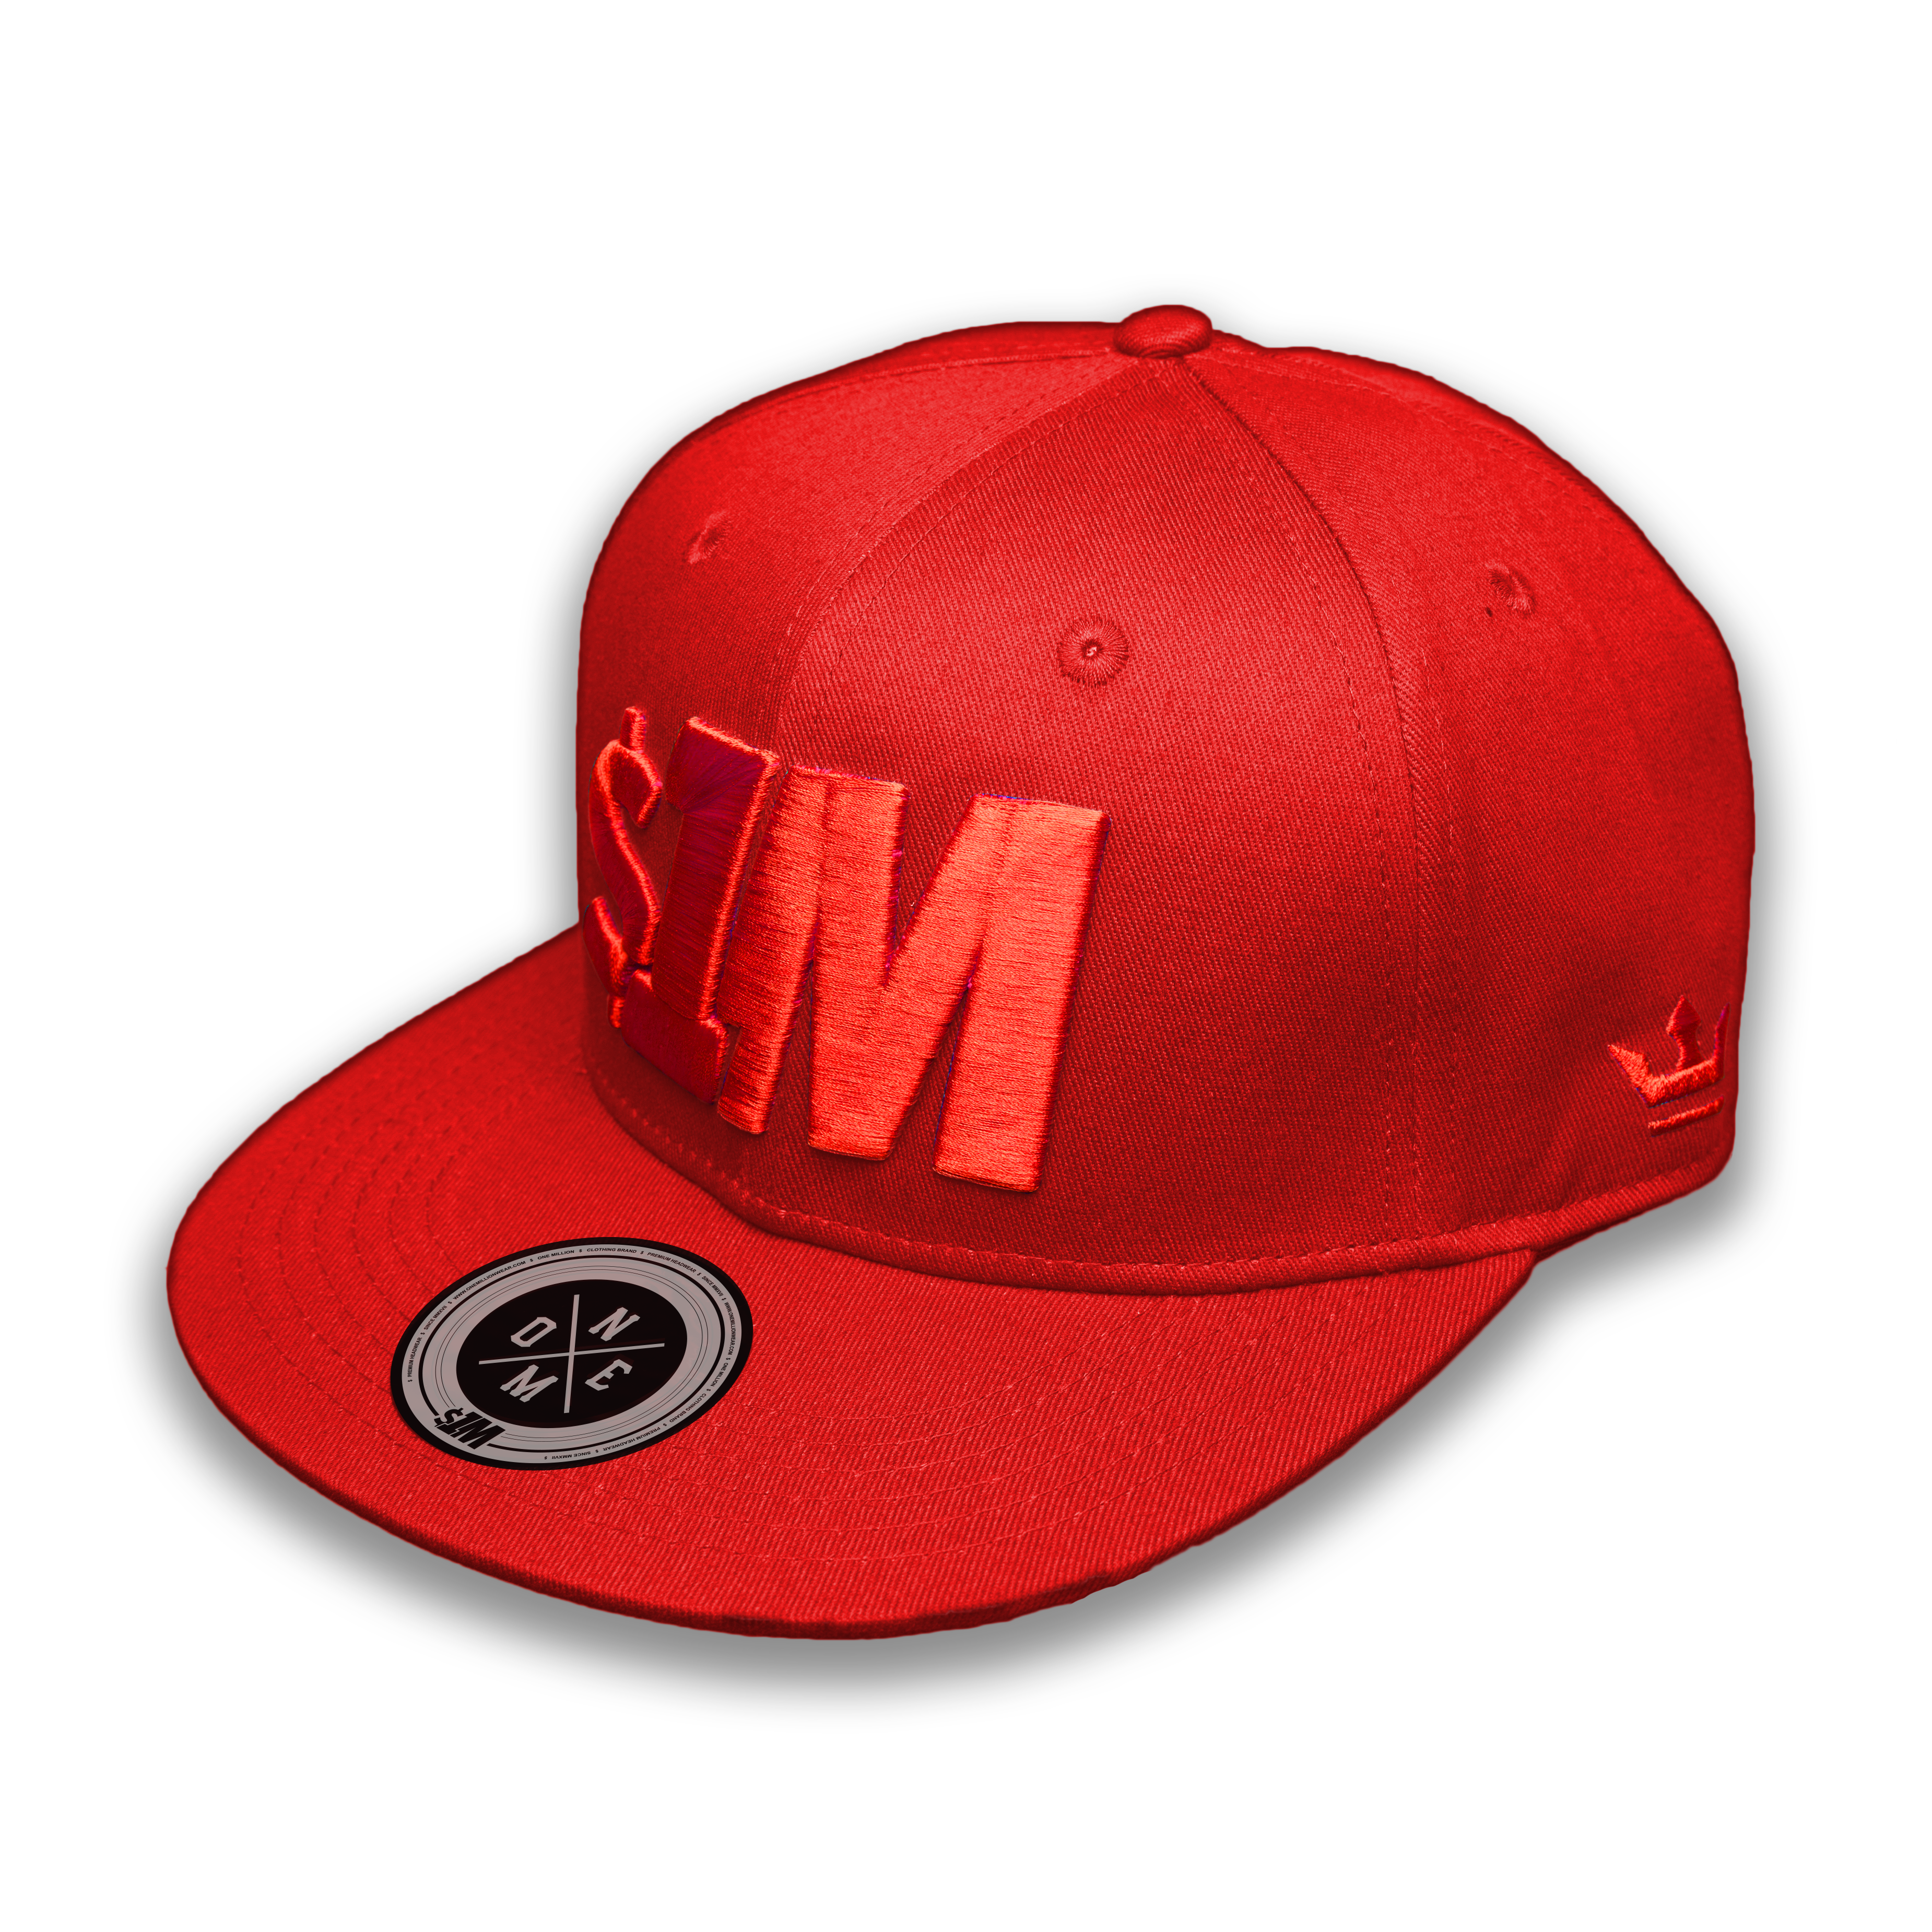 Gorra $1M Auténtica Red/Red - 1M Clothing Co.